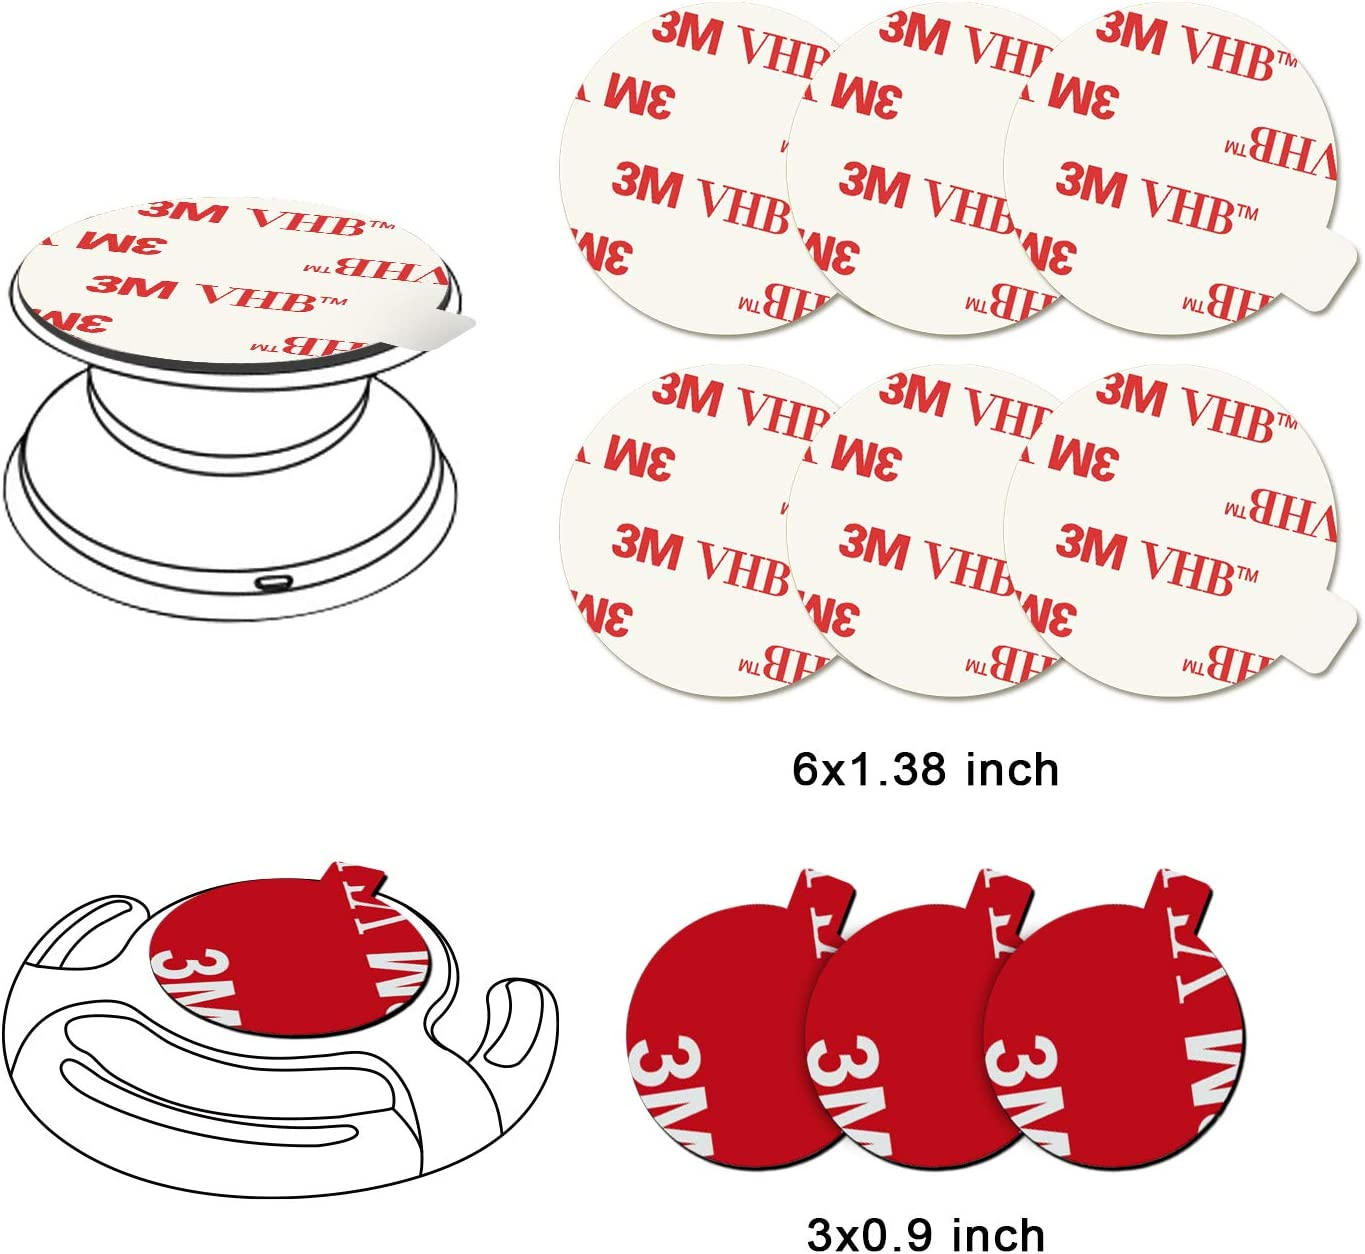 VOLPORT 2pcs VHB Sticker Pad for Mount 6pcs 3M Sticky Adhesive Replacement Parts Circle Double Sided Tape for Collapsible Grip Stands Back /& Phone Car Magnetic Holder Base